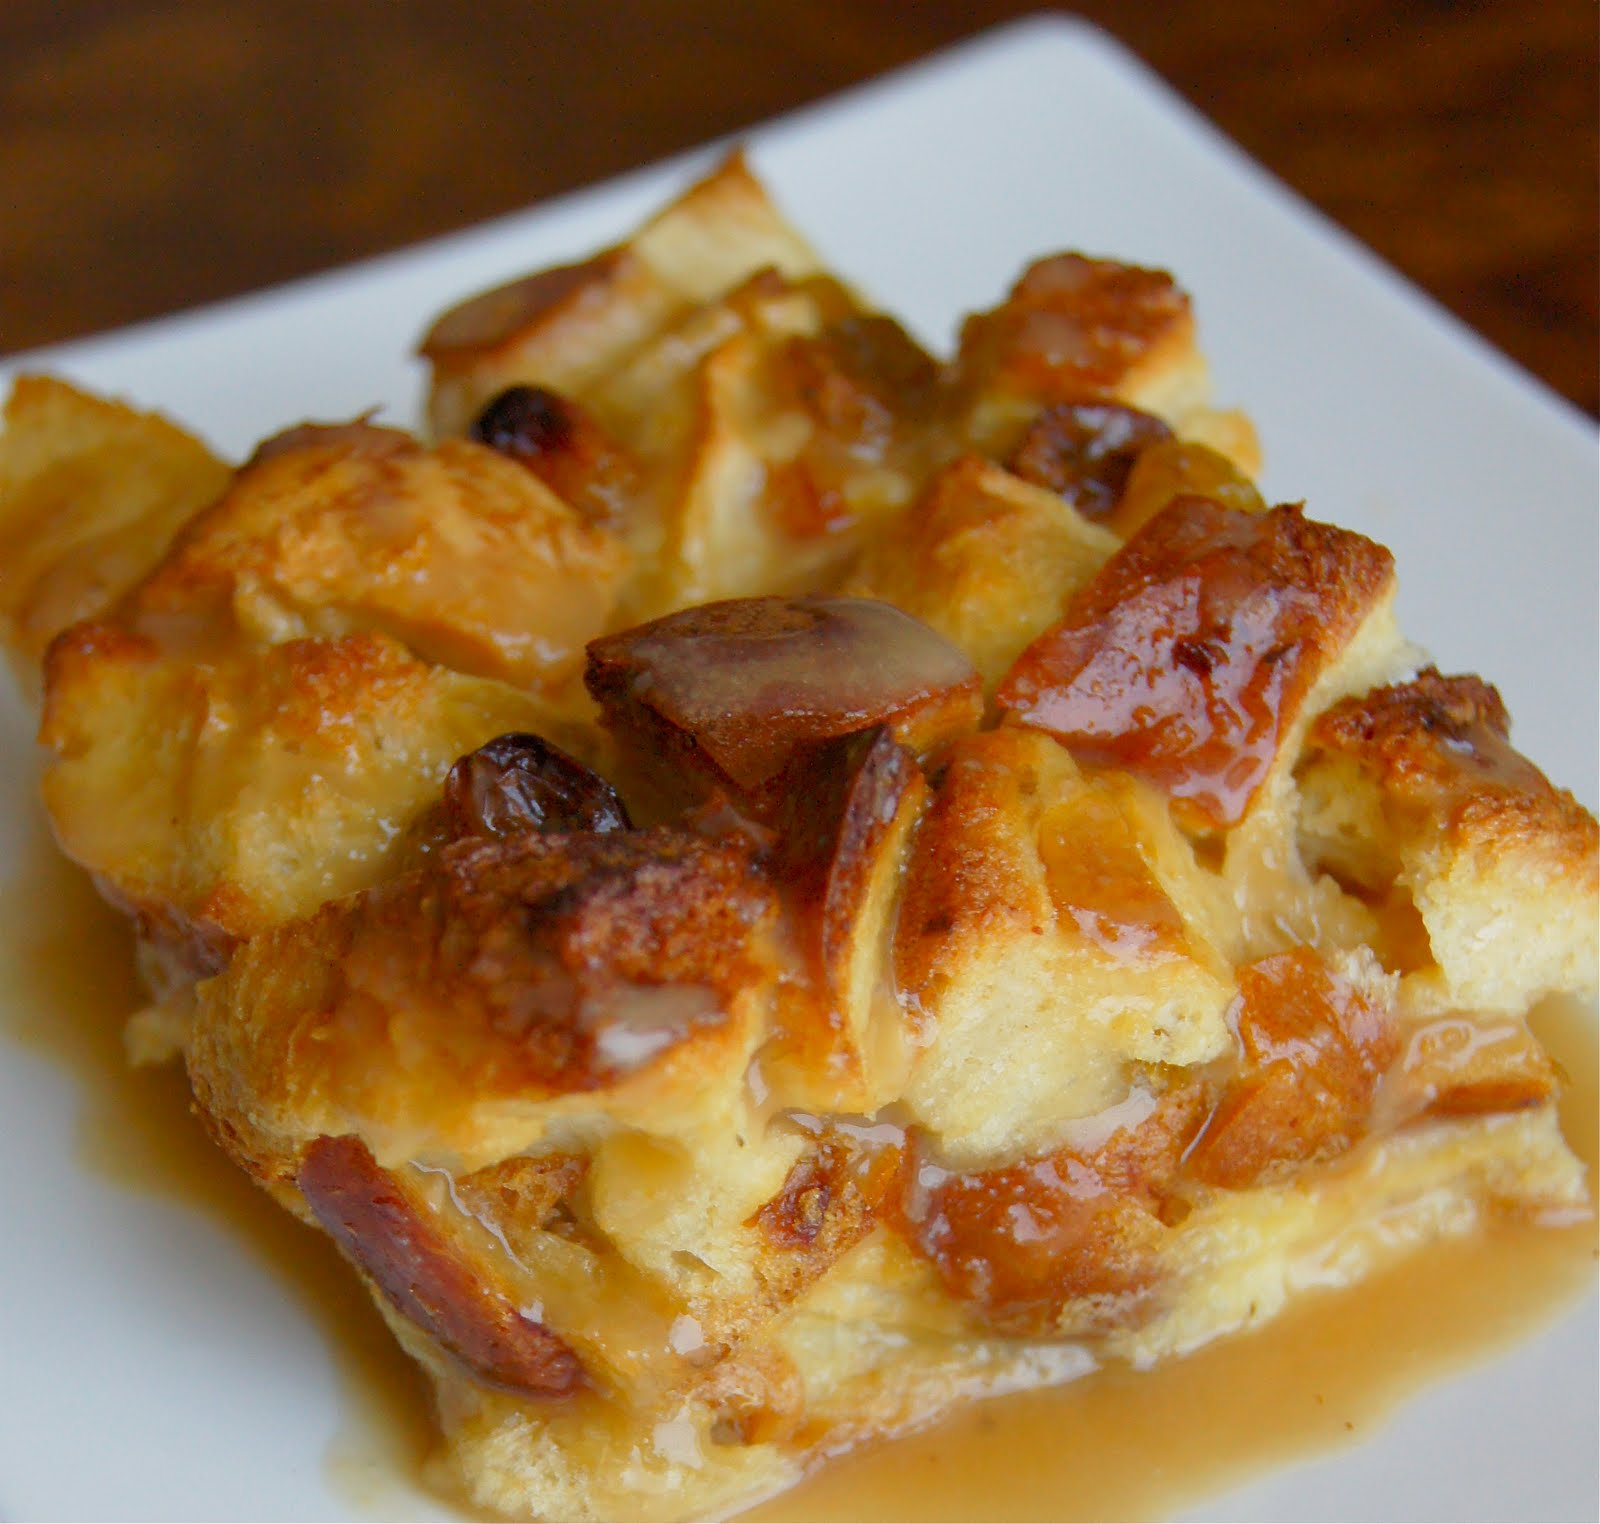 Healthy and Gourmet: Rum and Raisin Bread Pudding with Rum Sauce